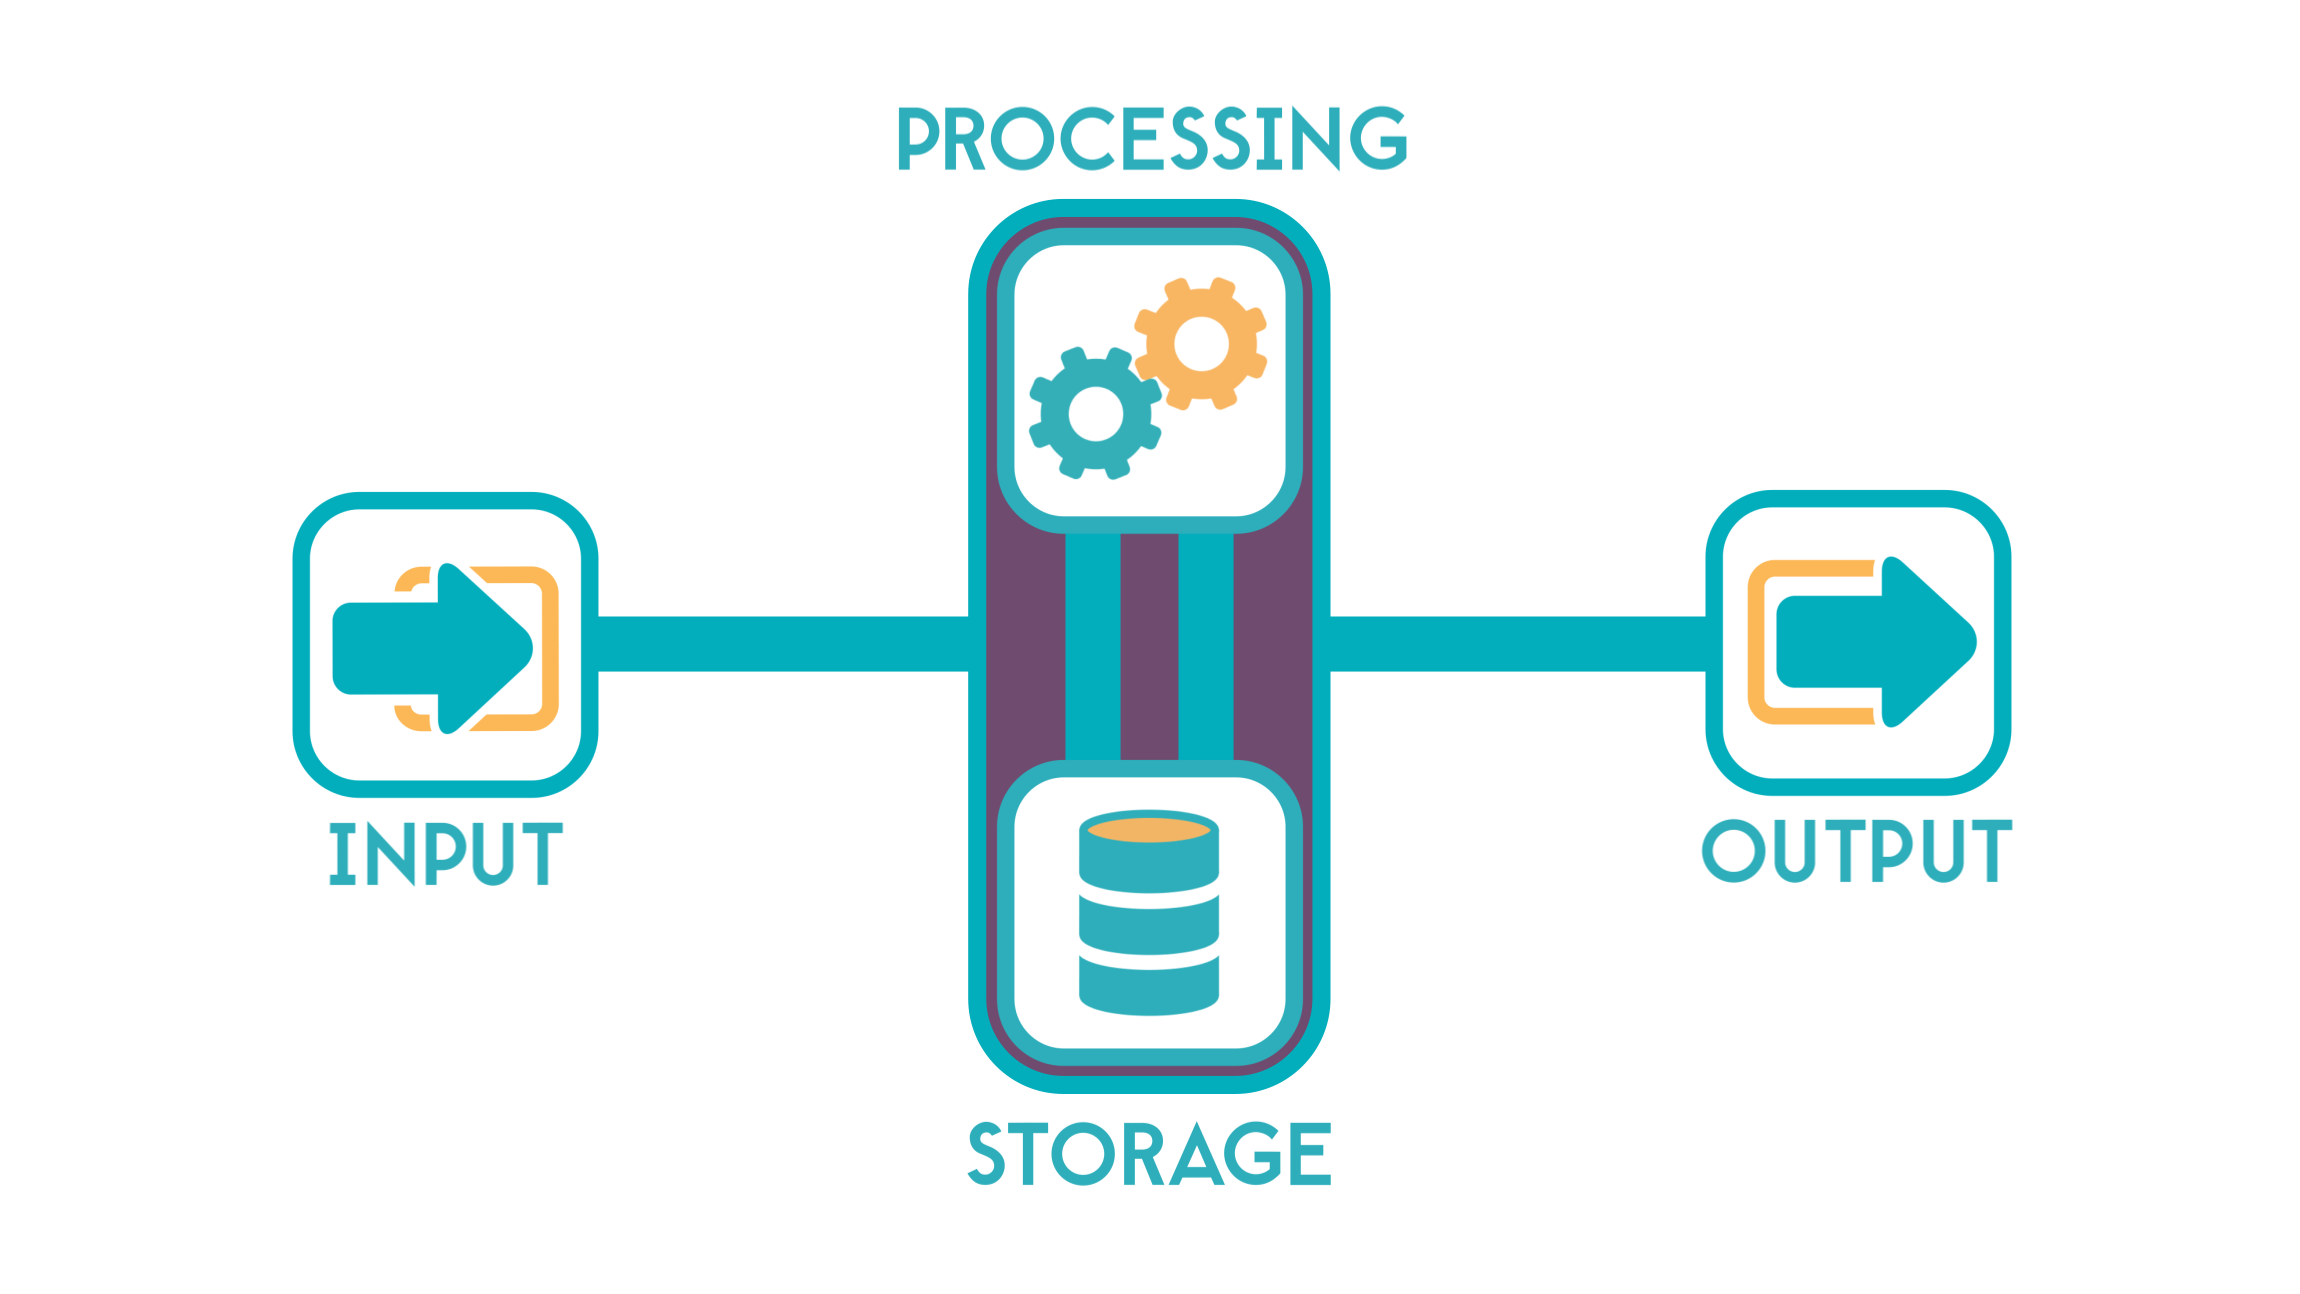 input output process from: IAGON: The Best Cloud Storage Service Ever.—Steemkr